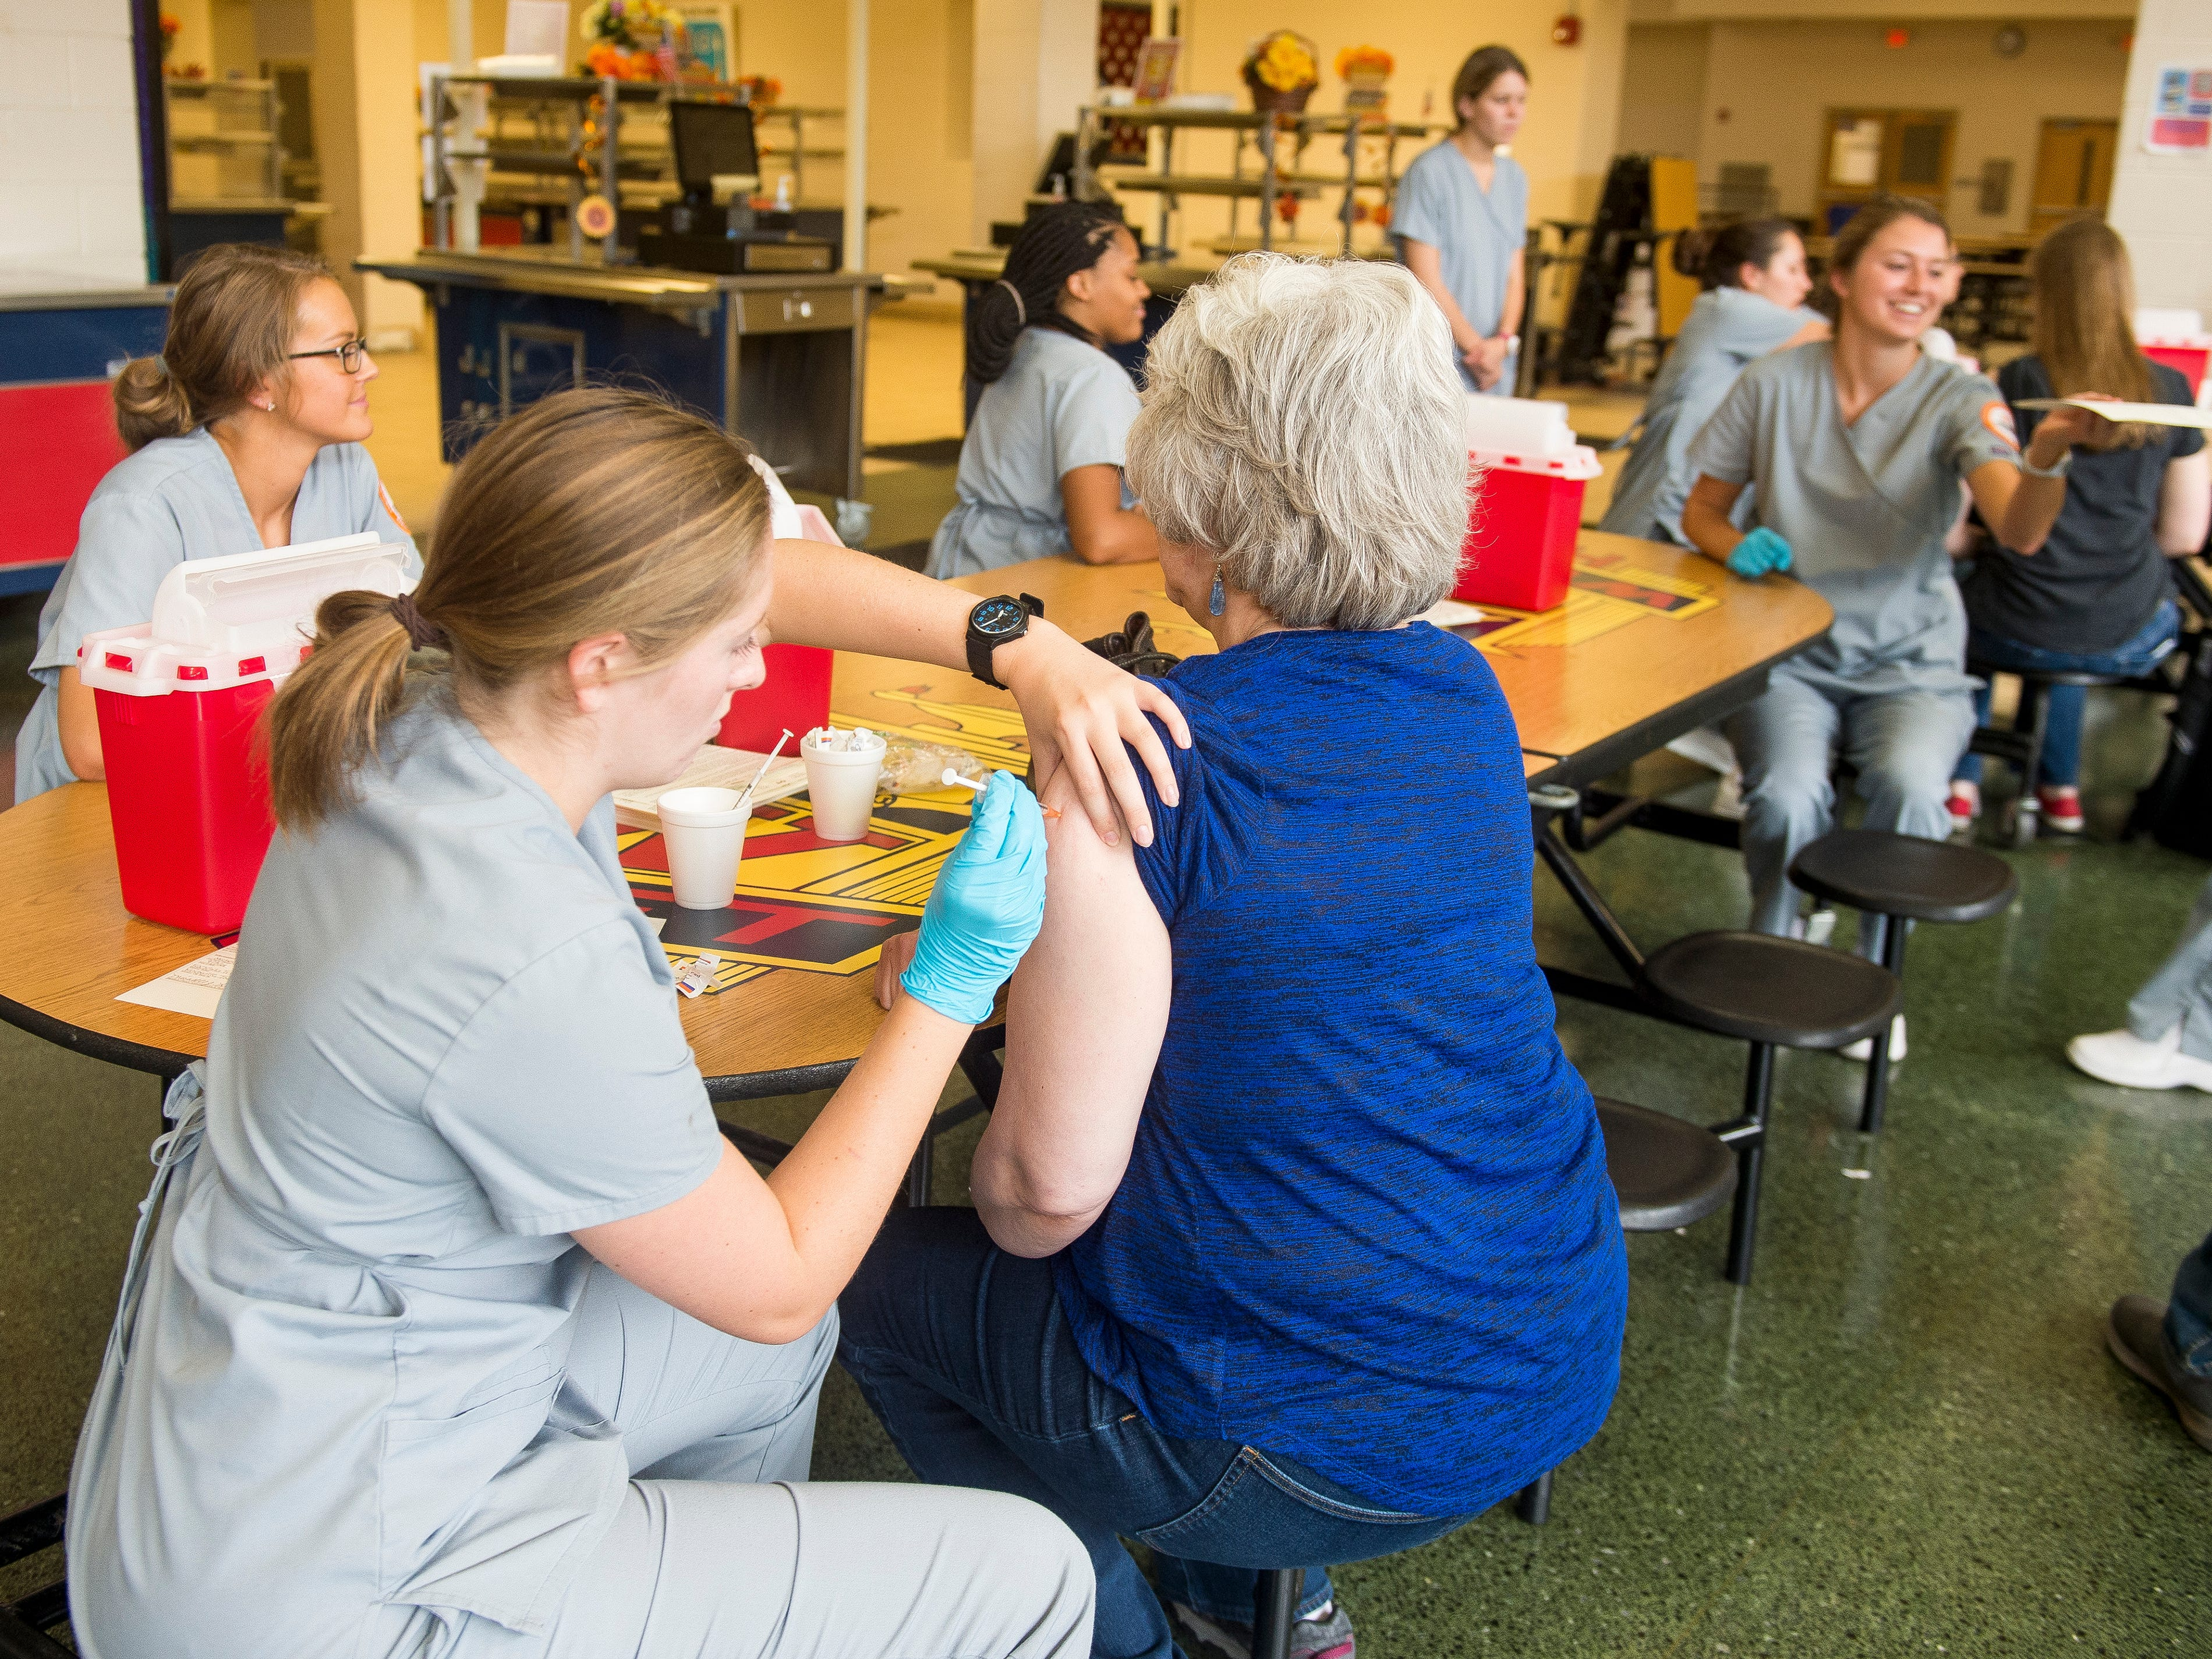 Flu shots are administered at West High School during Free Flu Shot Saturday on Saturday, October 12, 2018.